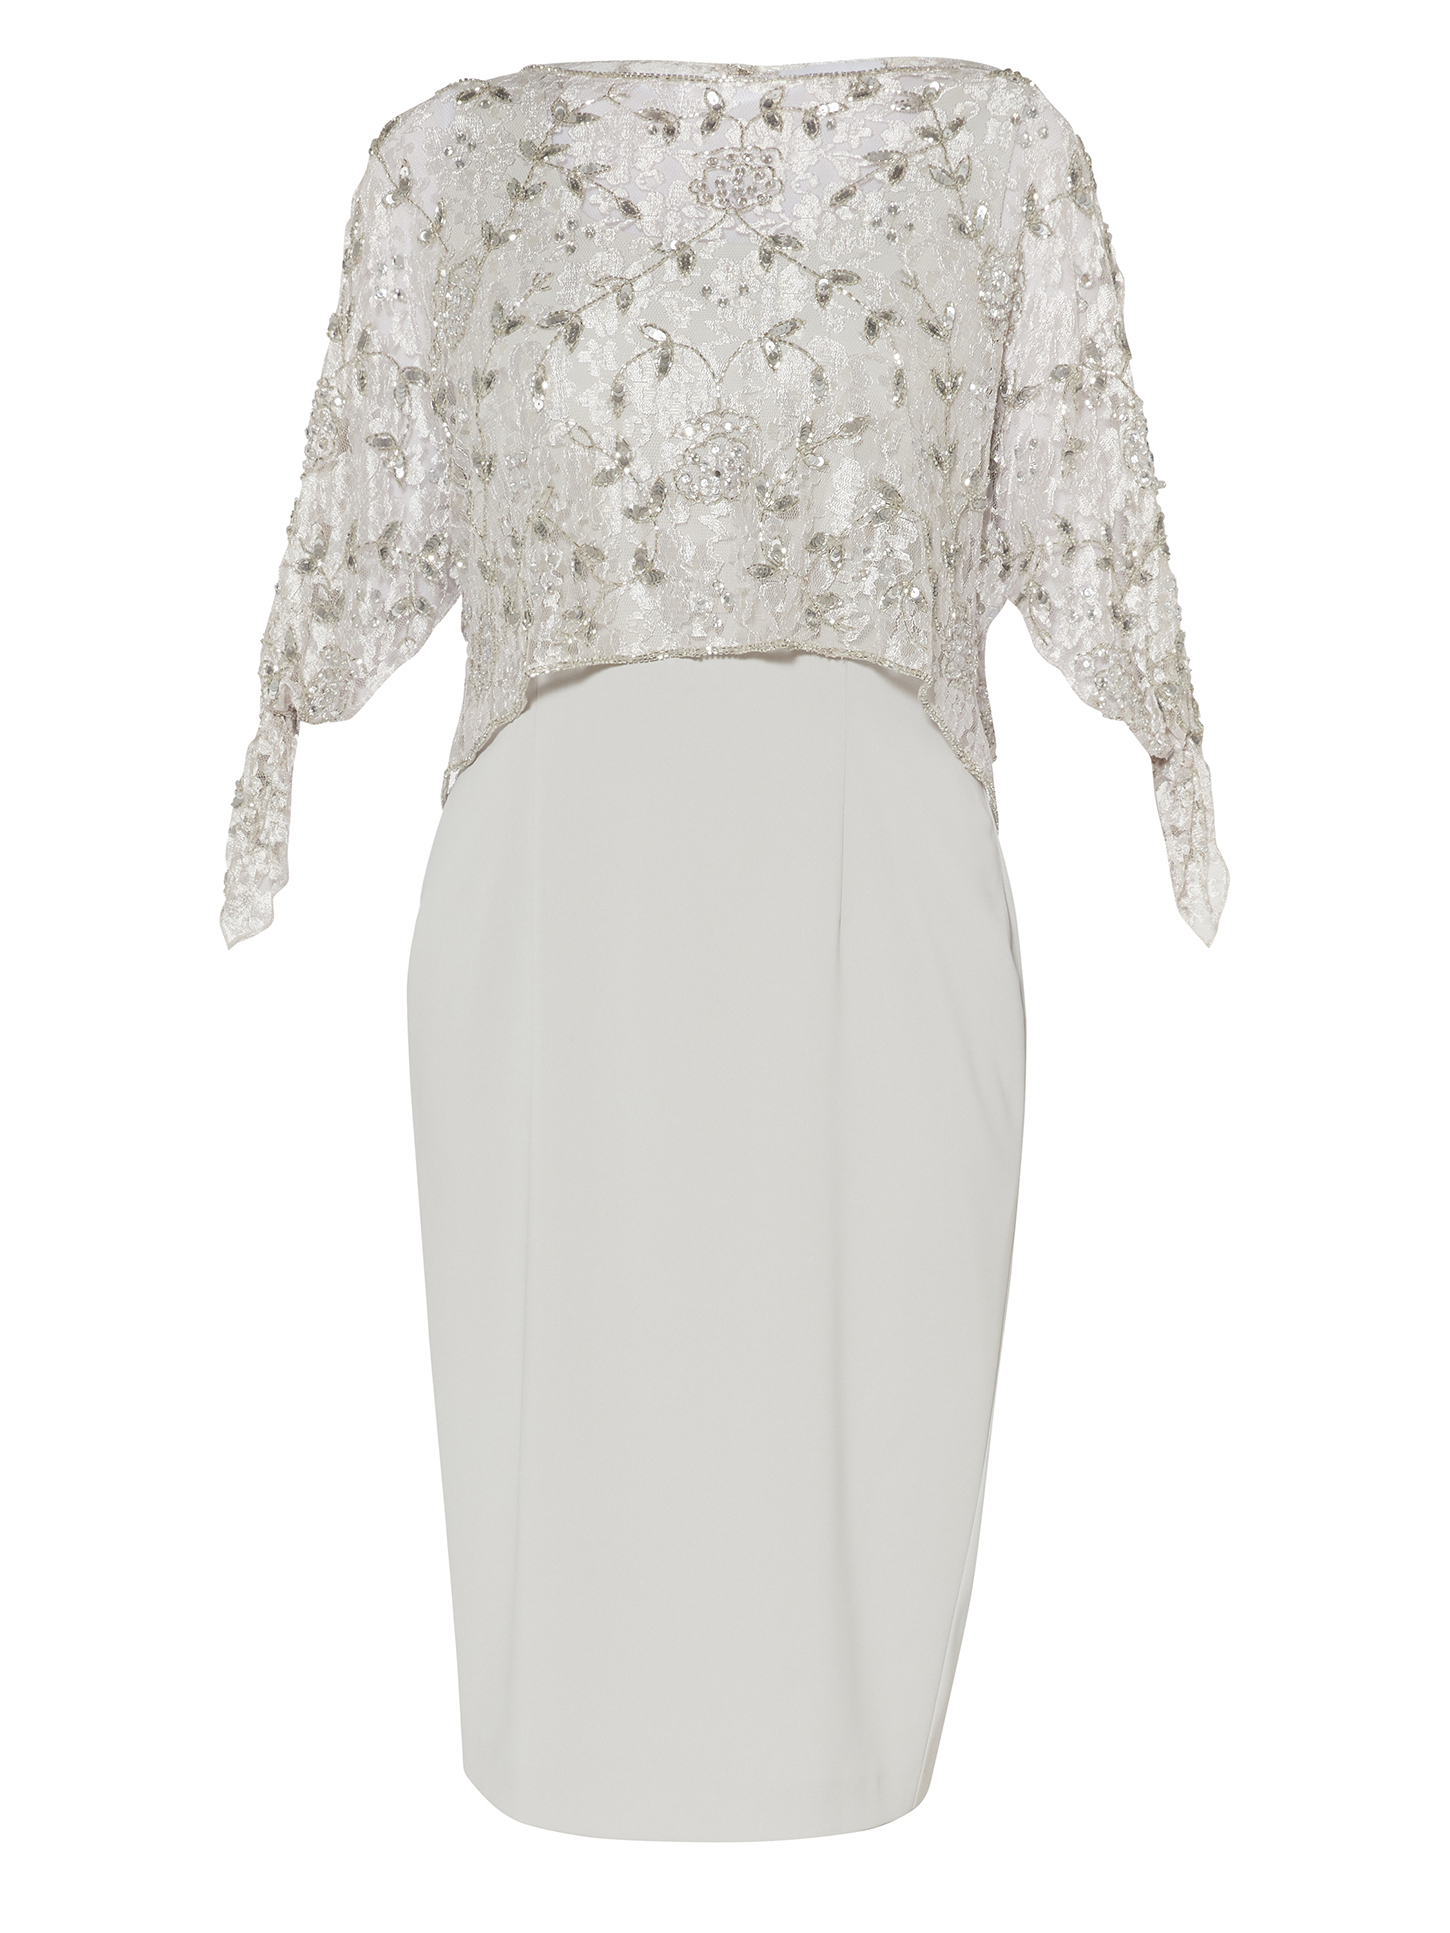 Pearle Dress And Lace Overtop